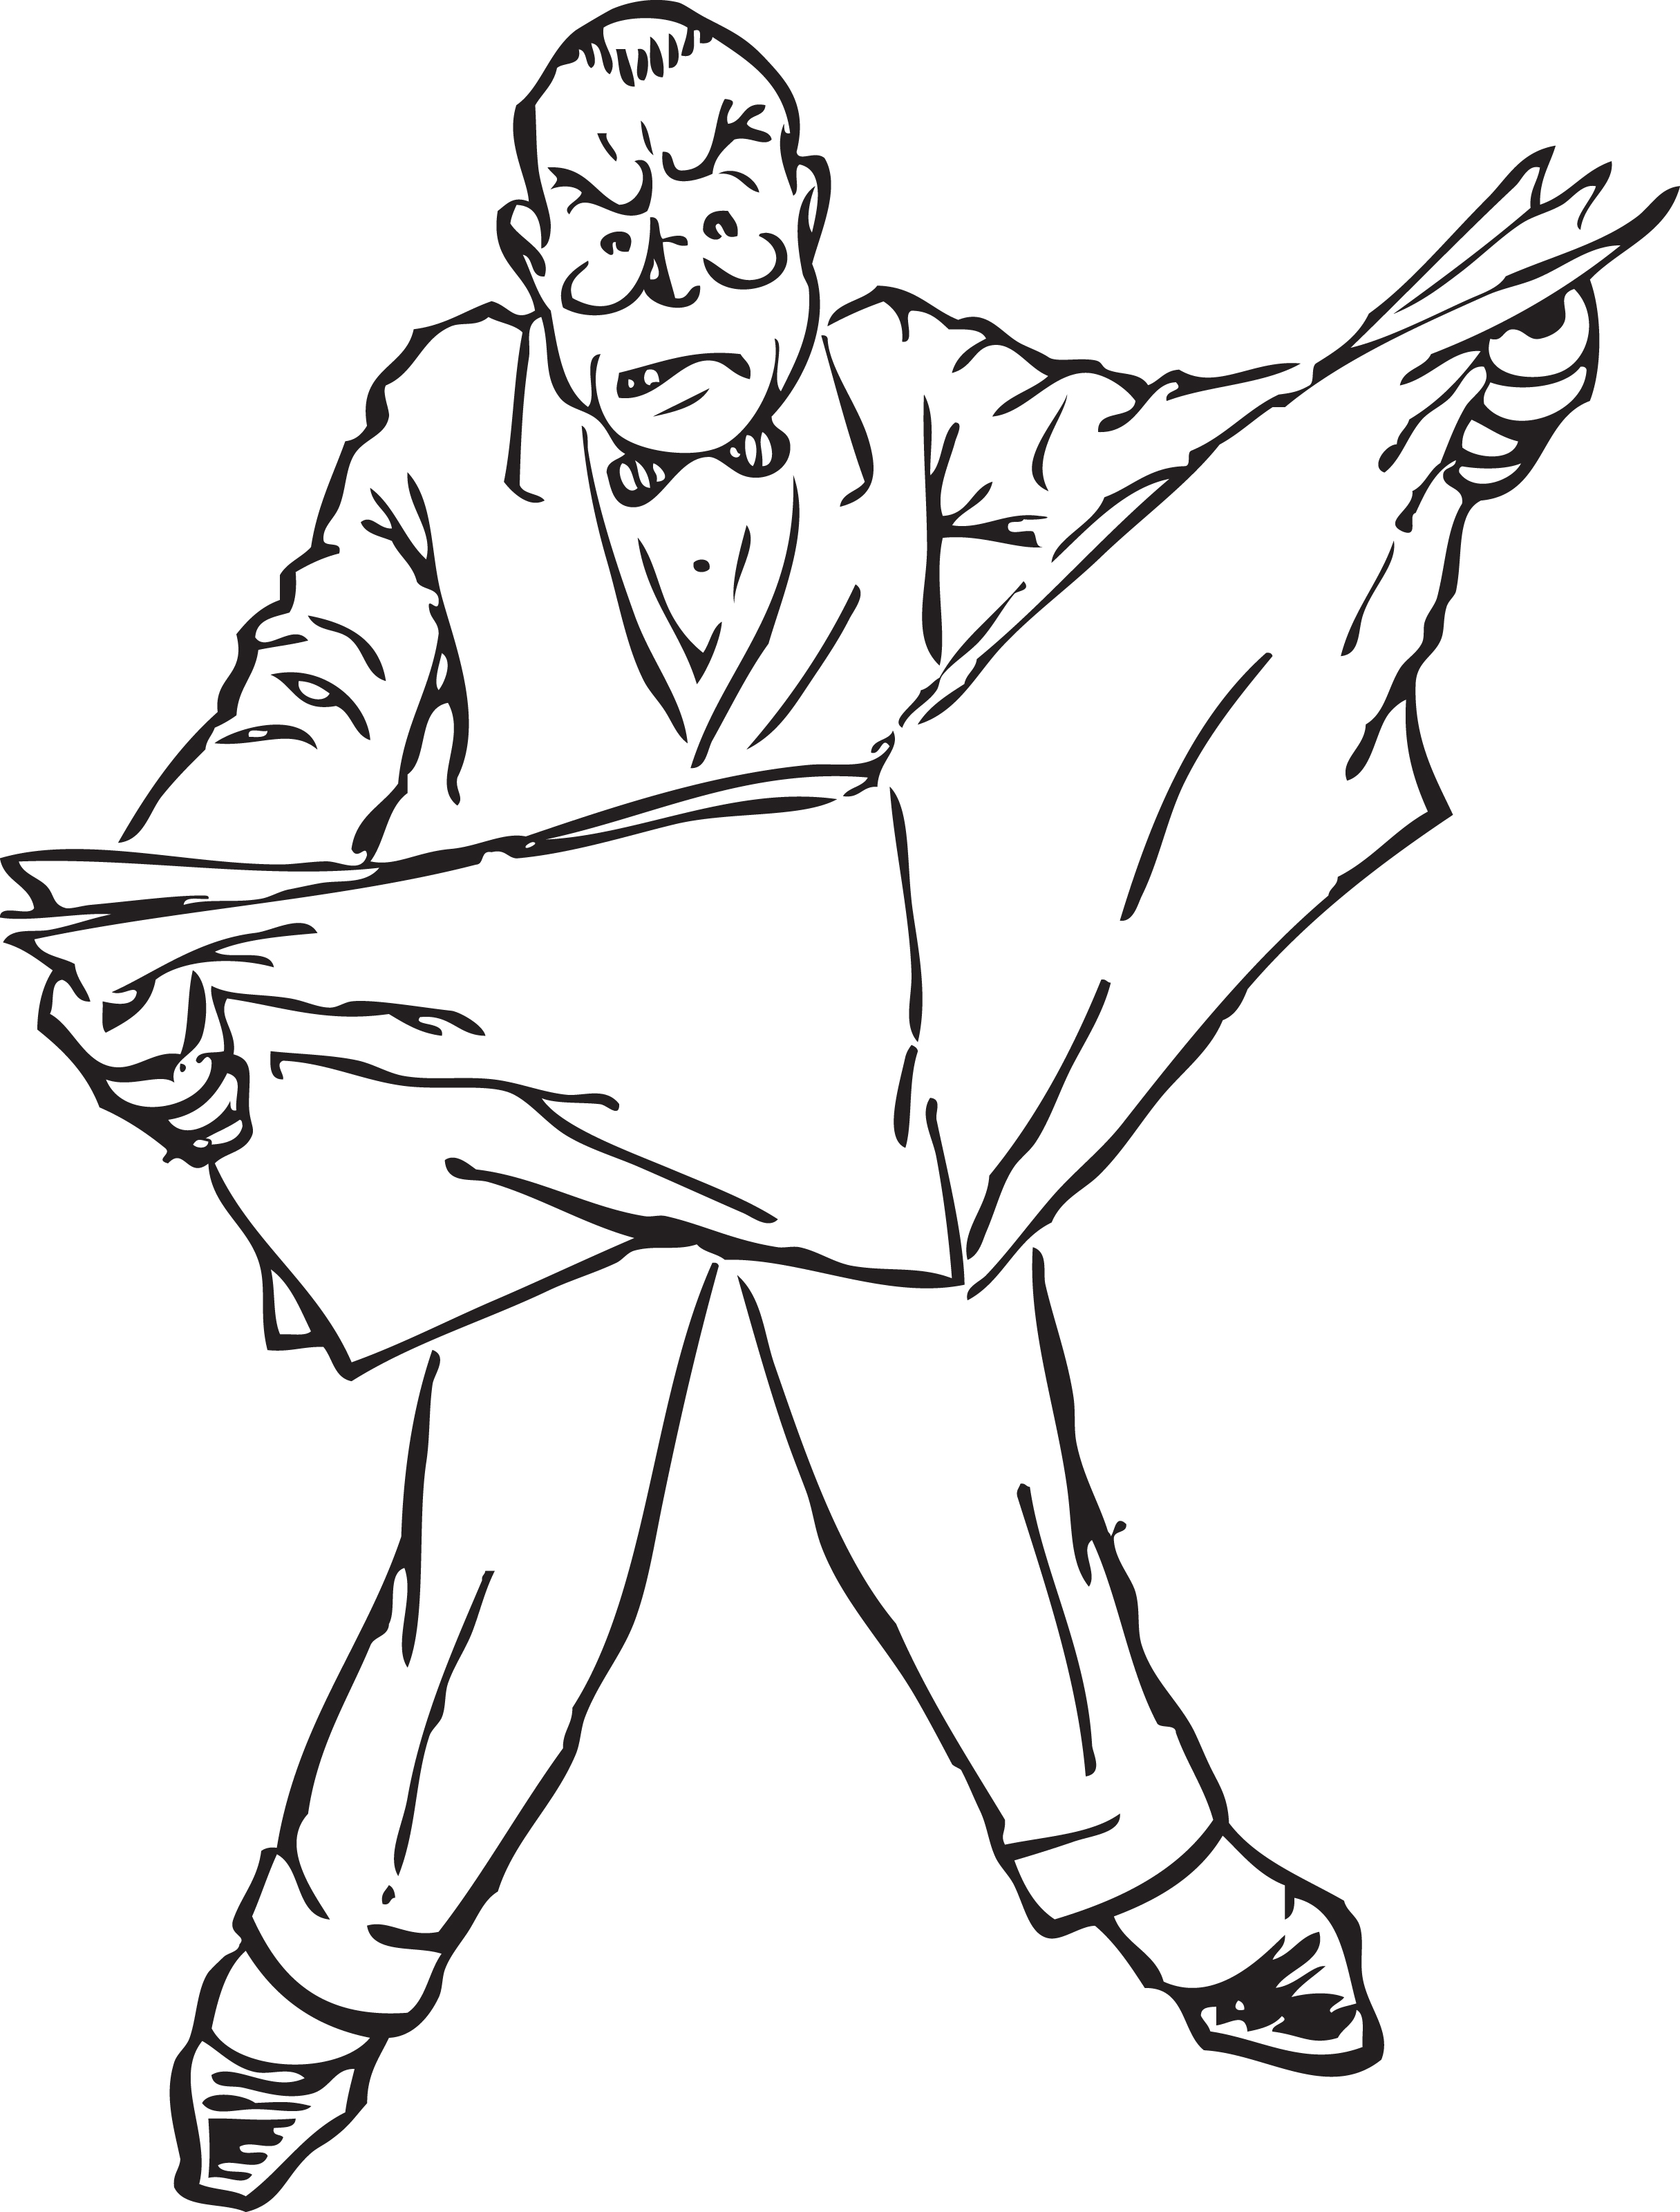 Clipart newspaper man talking to girl.